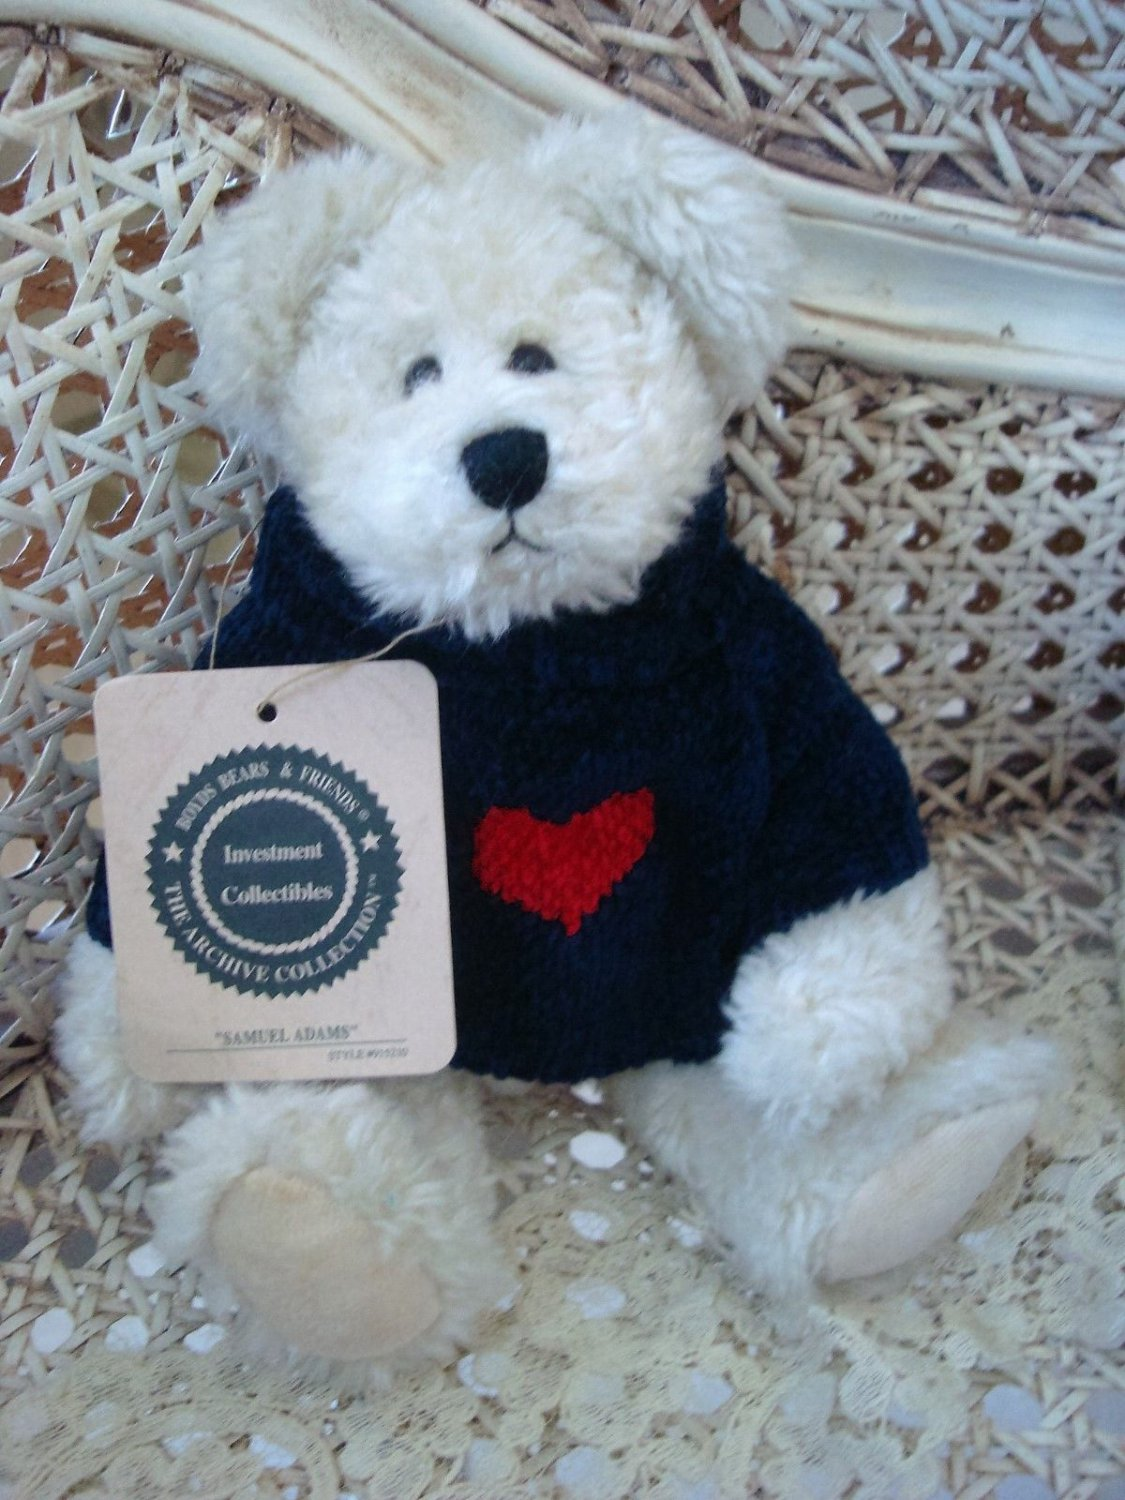 "BOYDS SAMUEL ADAMS 9"" TALL RETIRED VALENTINE BEAR WITH HEART SWEATER"